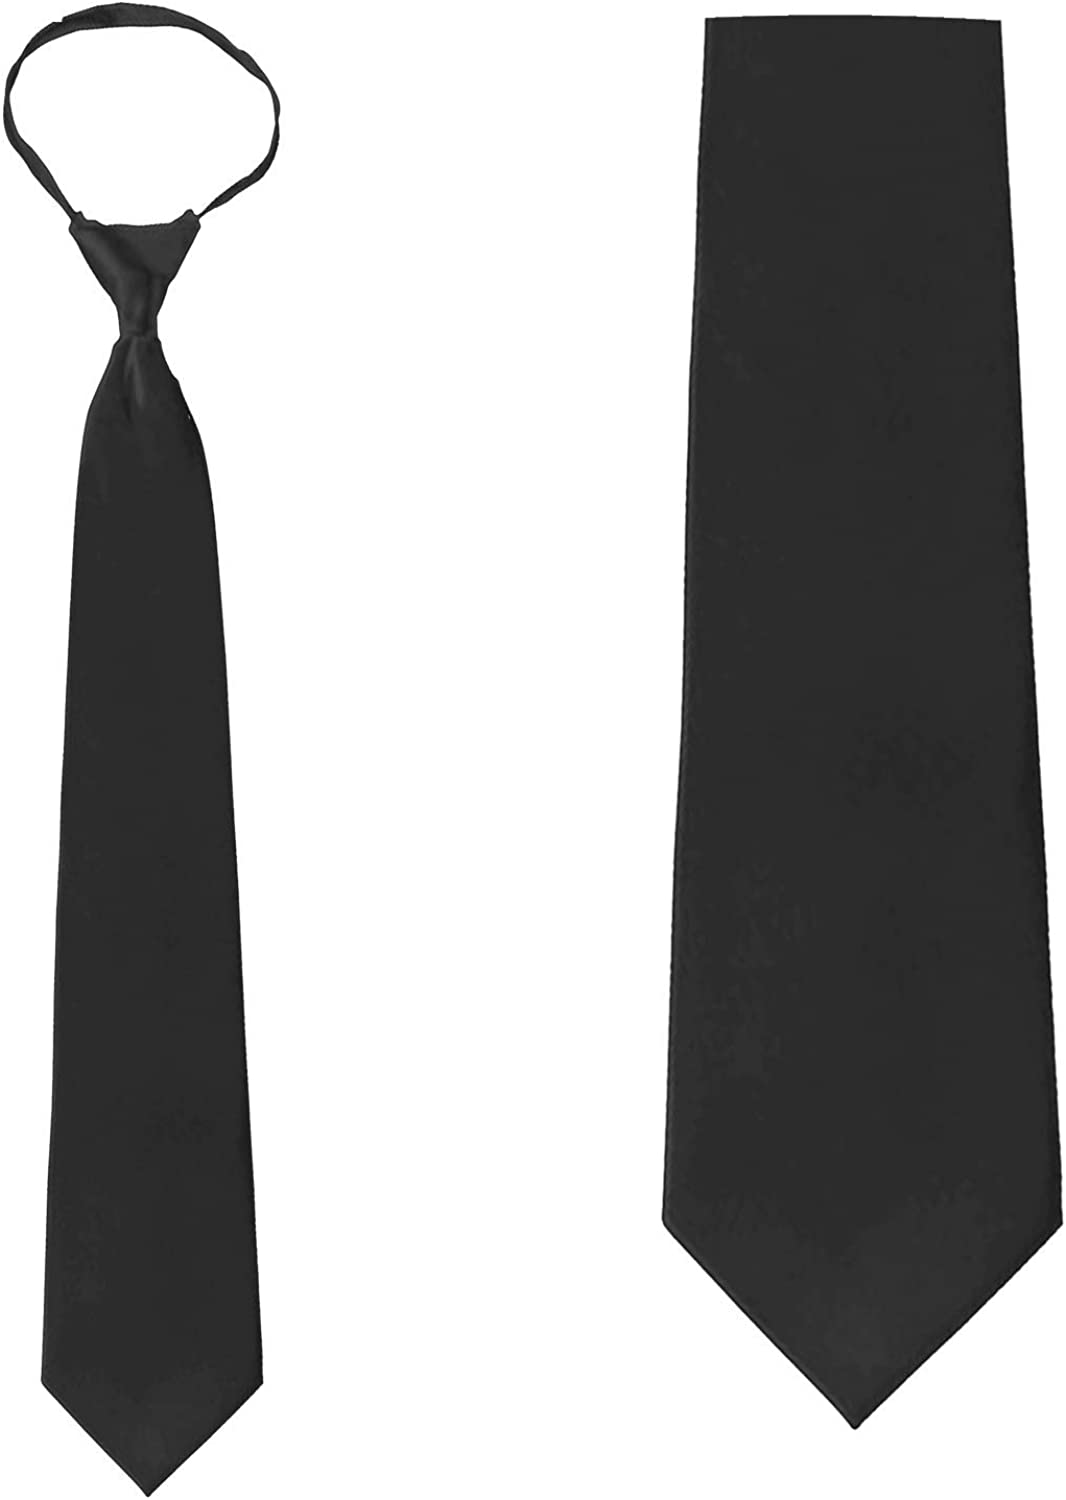 Solid Black Zipper Tie Pre-Tied Mens Spring new work one after another Necktie We OFFer at cheap prices